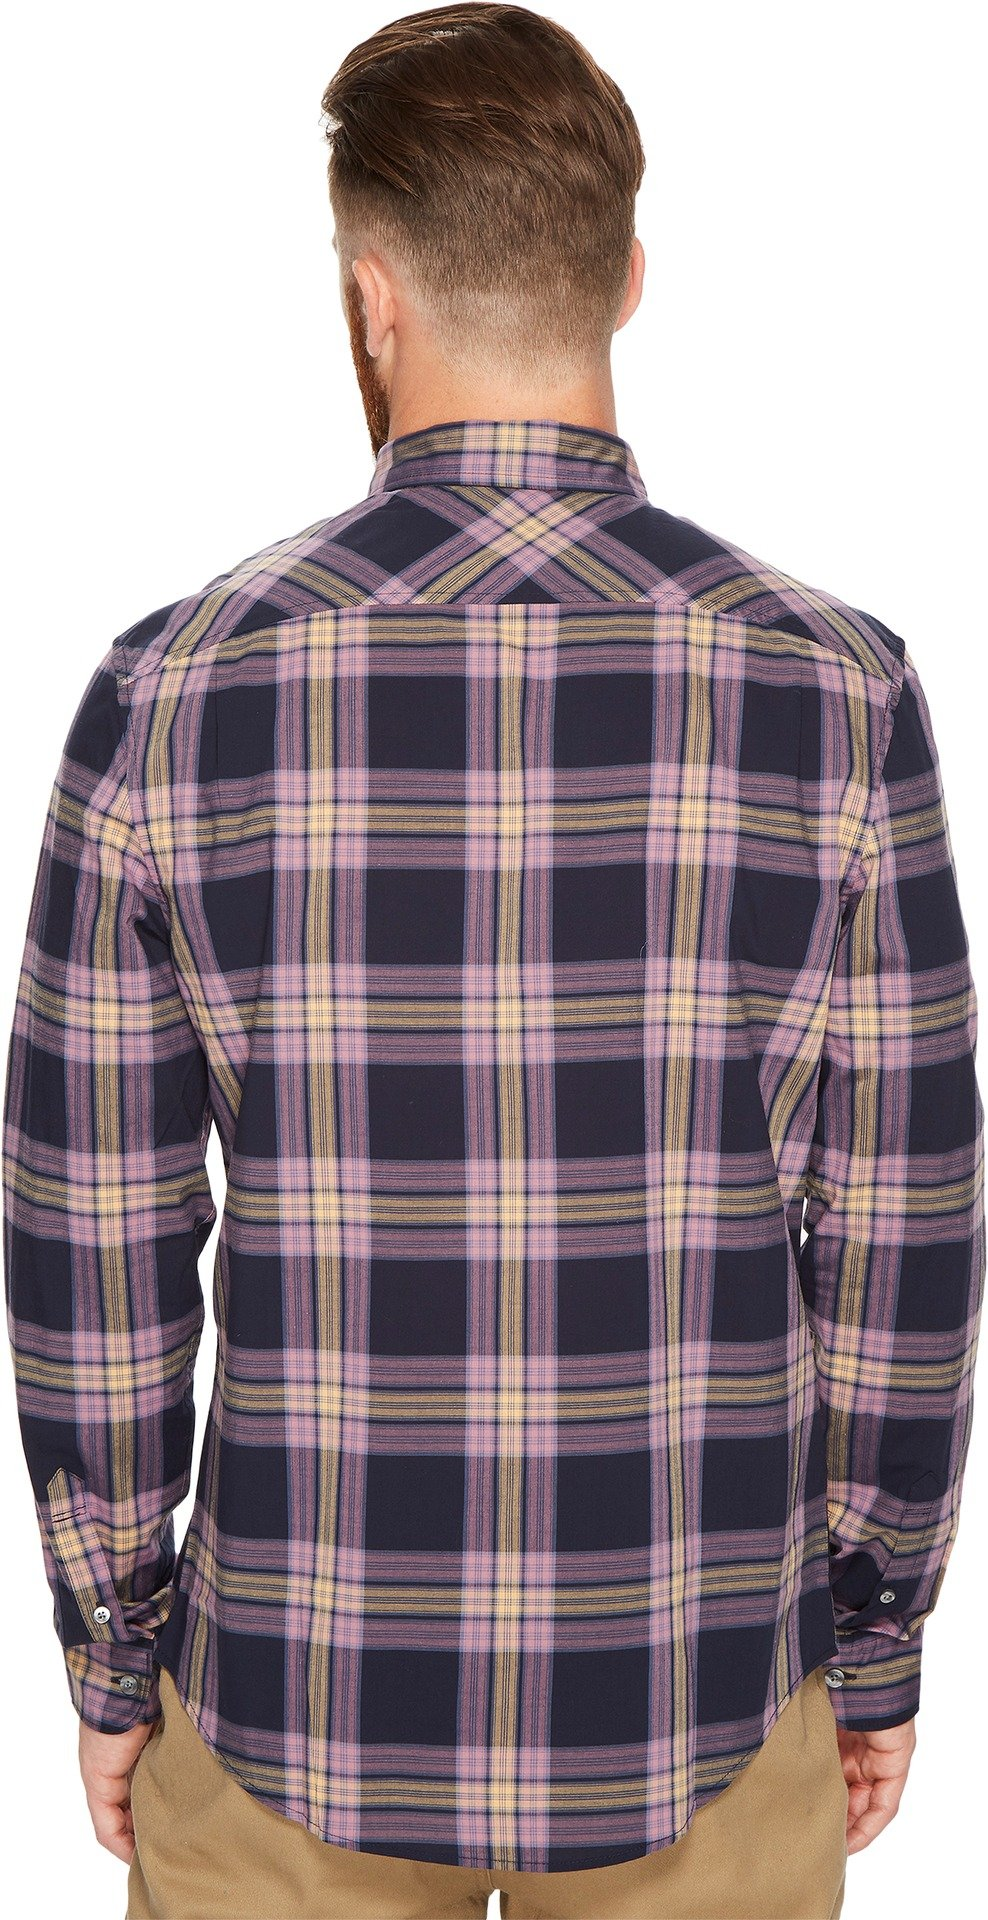 Original Penguin Men's Long Sleeve P55 Plaid Stretch Shirt, Dark Sapphire, Medium by Original Penguin (Image #3)